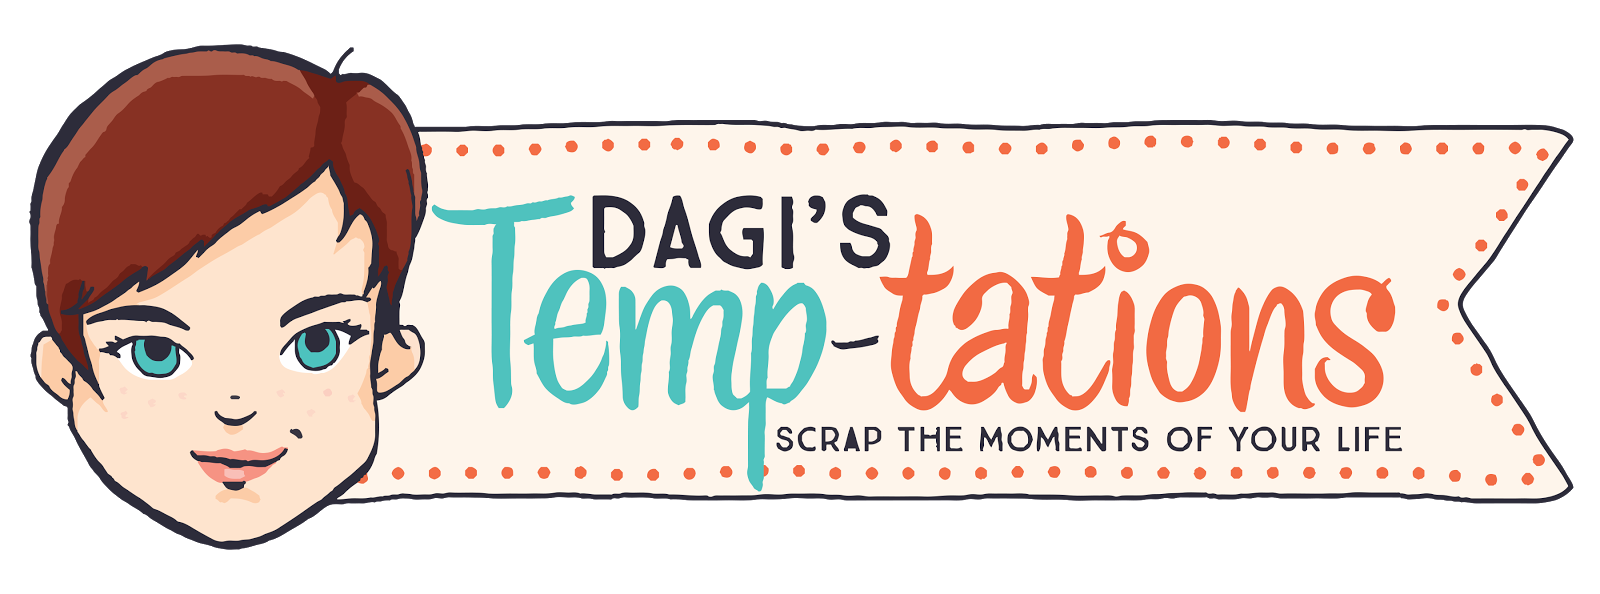 Dagi's Temp-tations